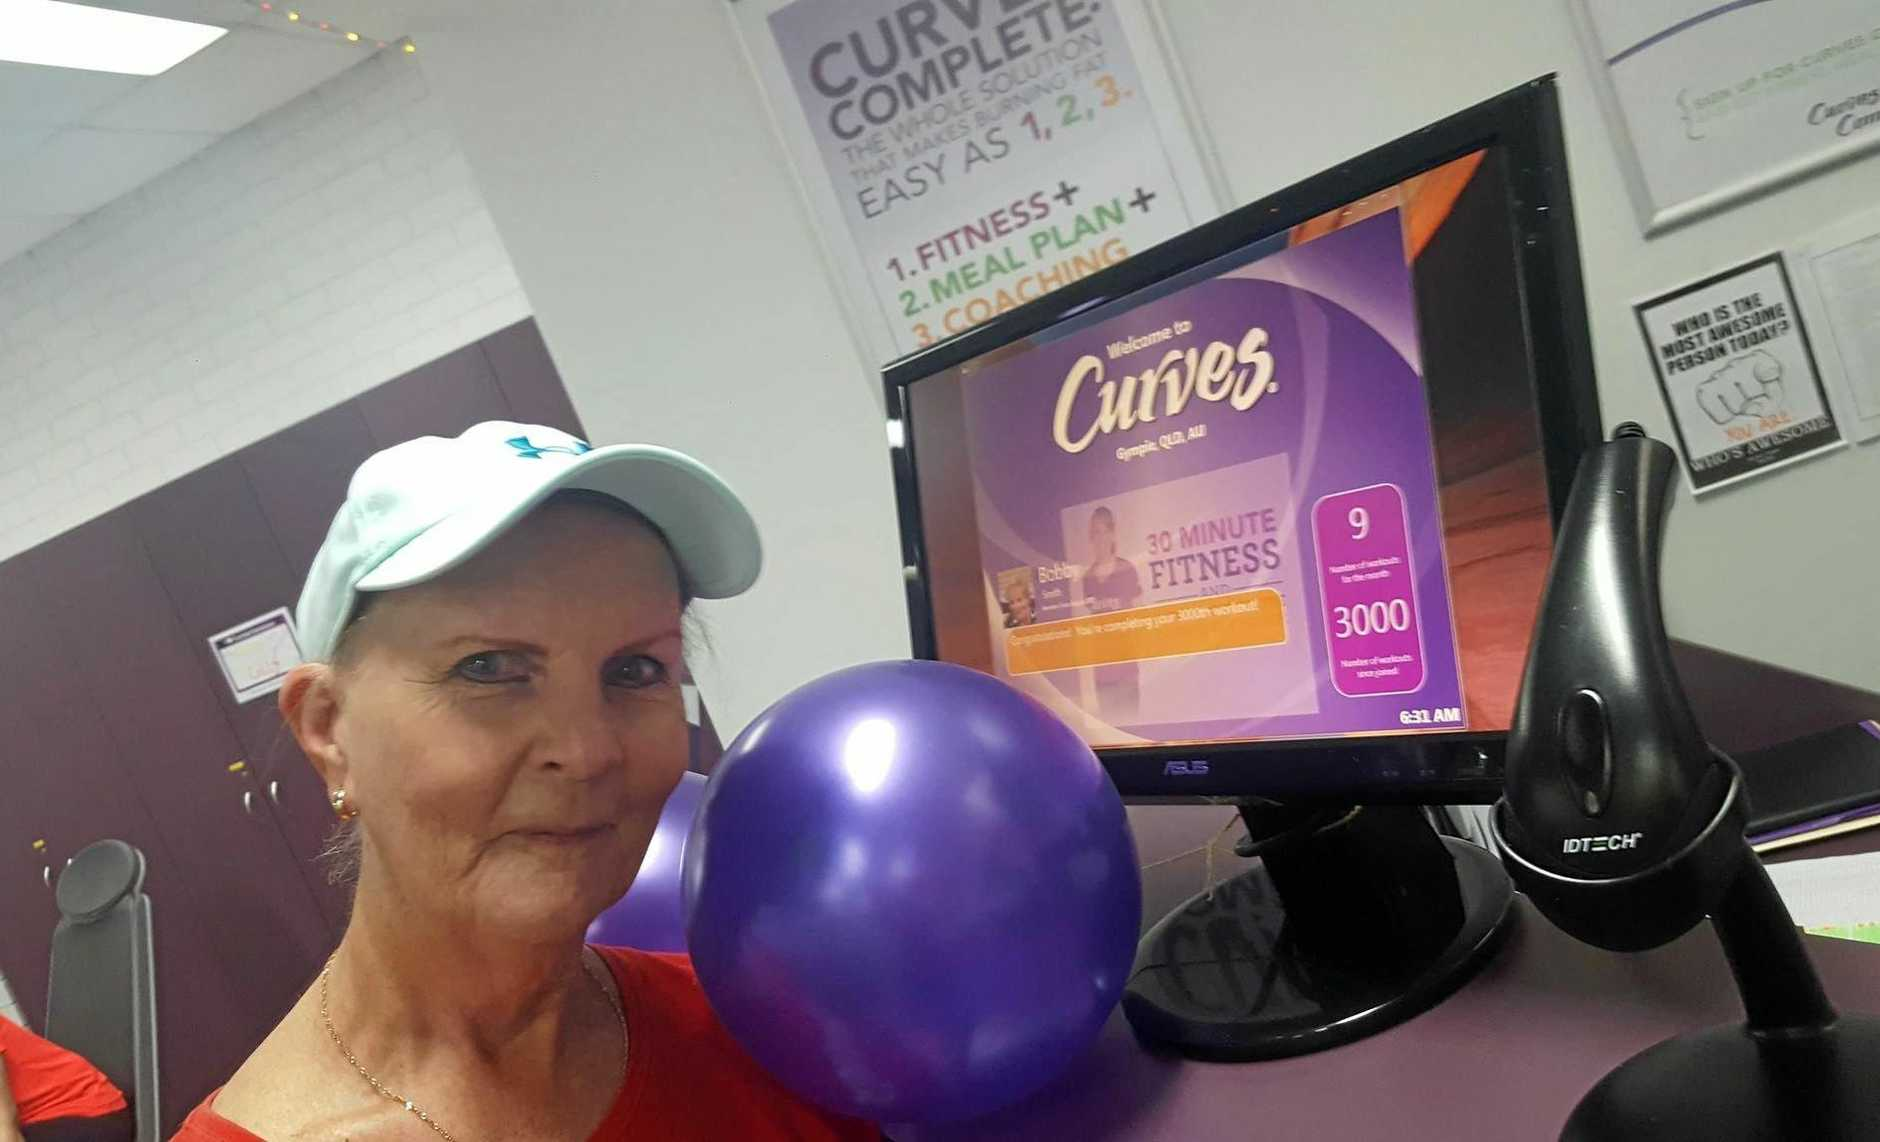 HIGH ACHIEVER: Bobby poses at Curves with the official online recognition of her milestone workout.